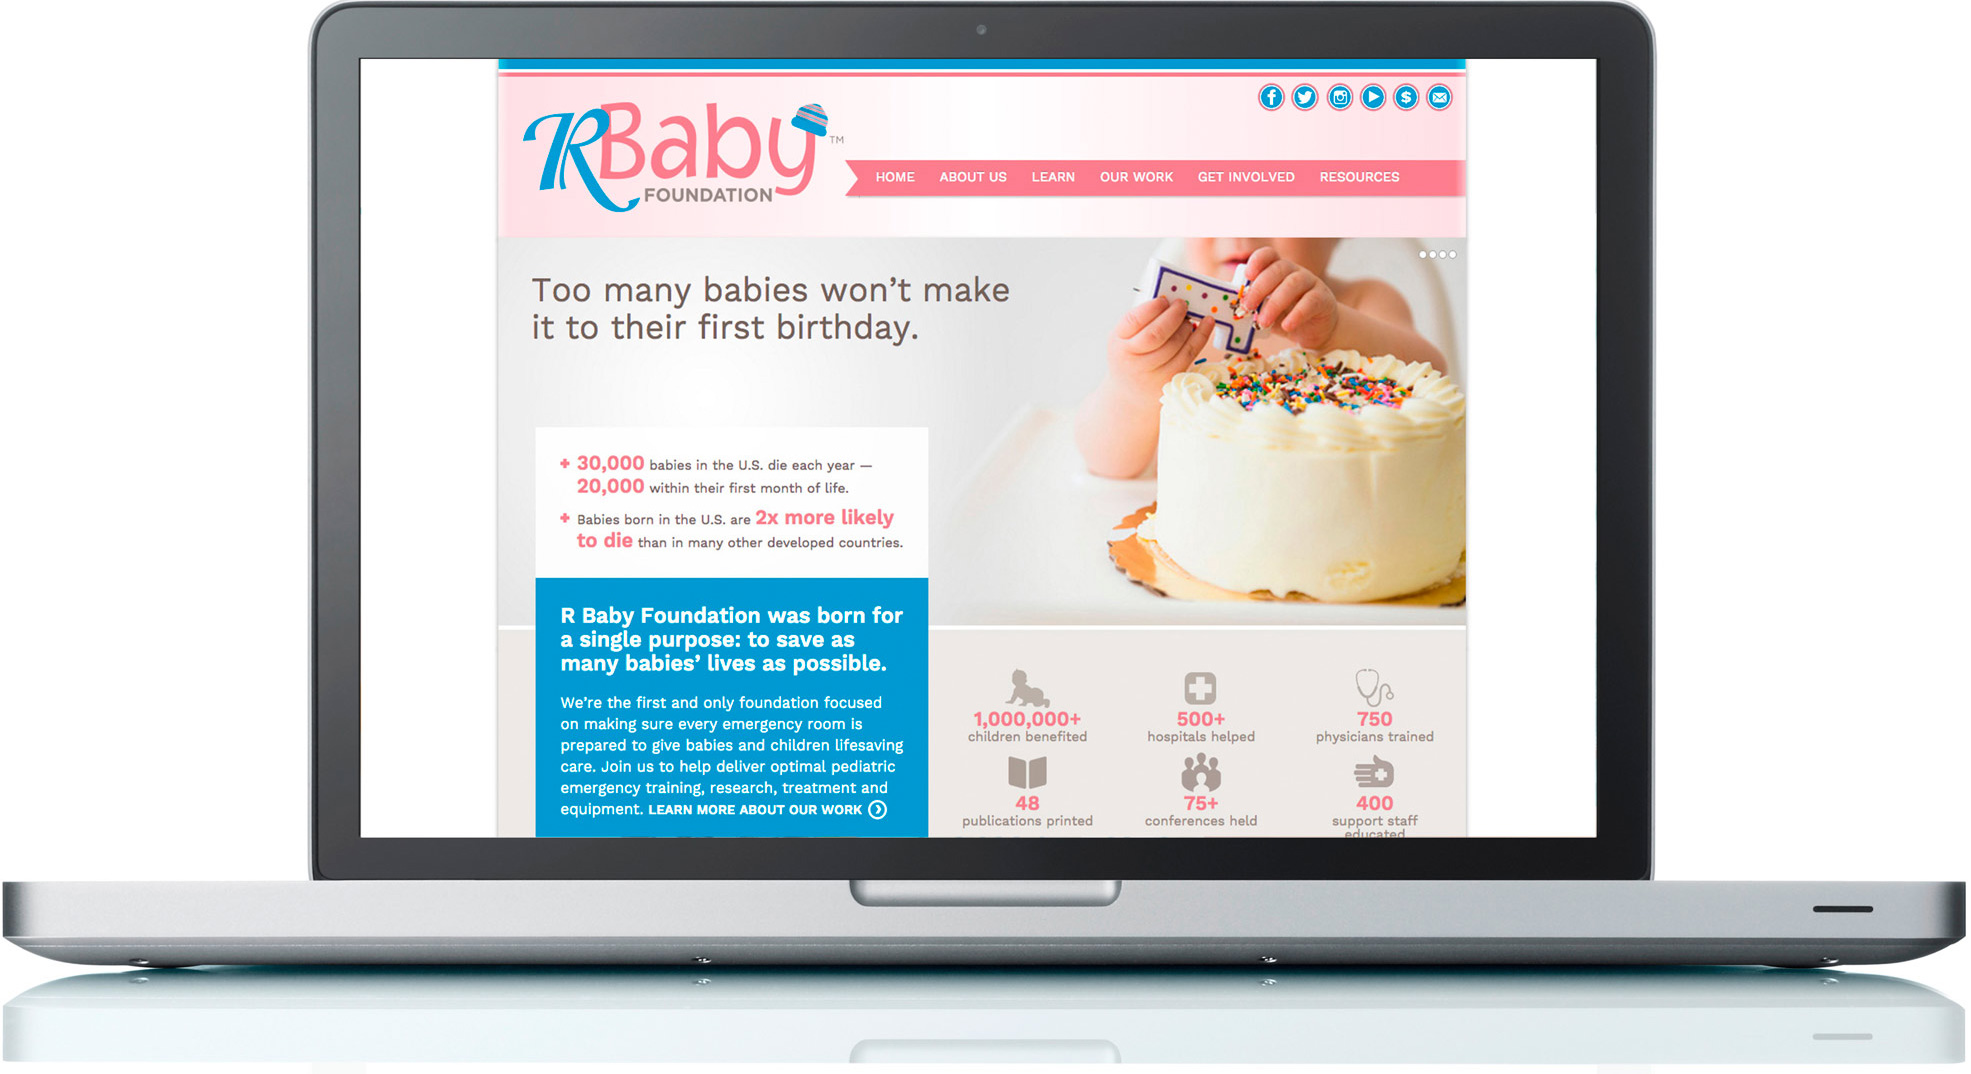 R Baby Foundation Website